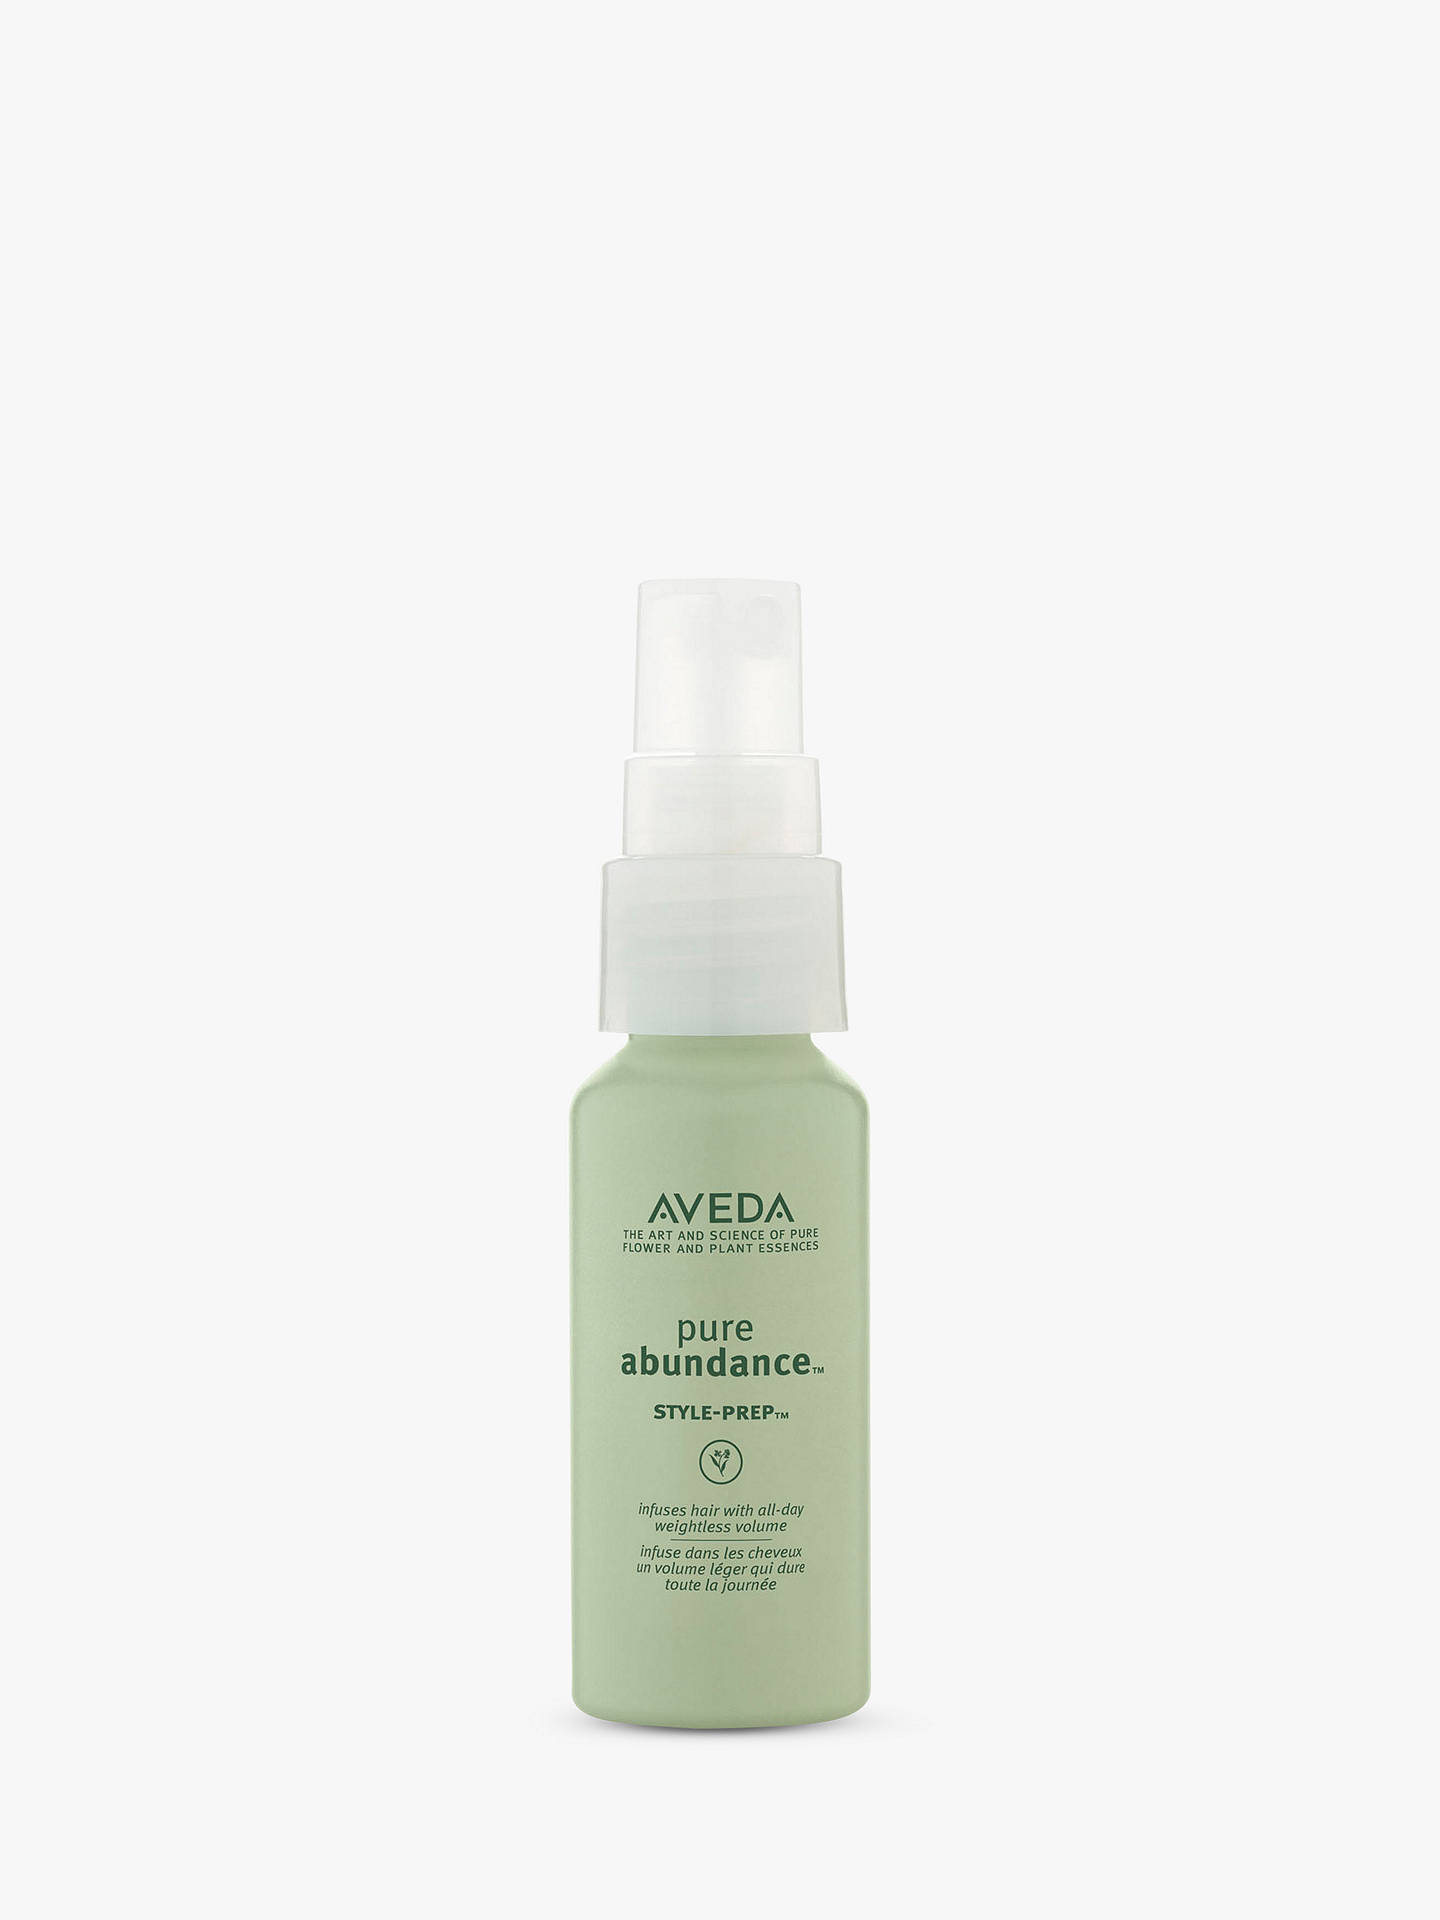 BuyAVEDA Pure Abundance™ Style-Prep™ Hair Treatment, 30ml Online at johnlewis.com